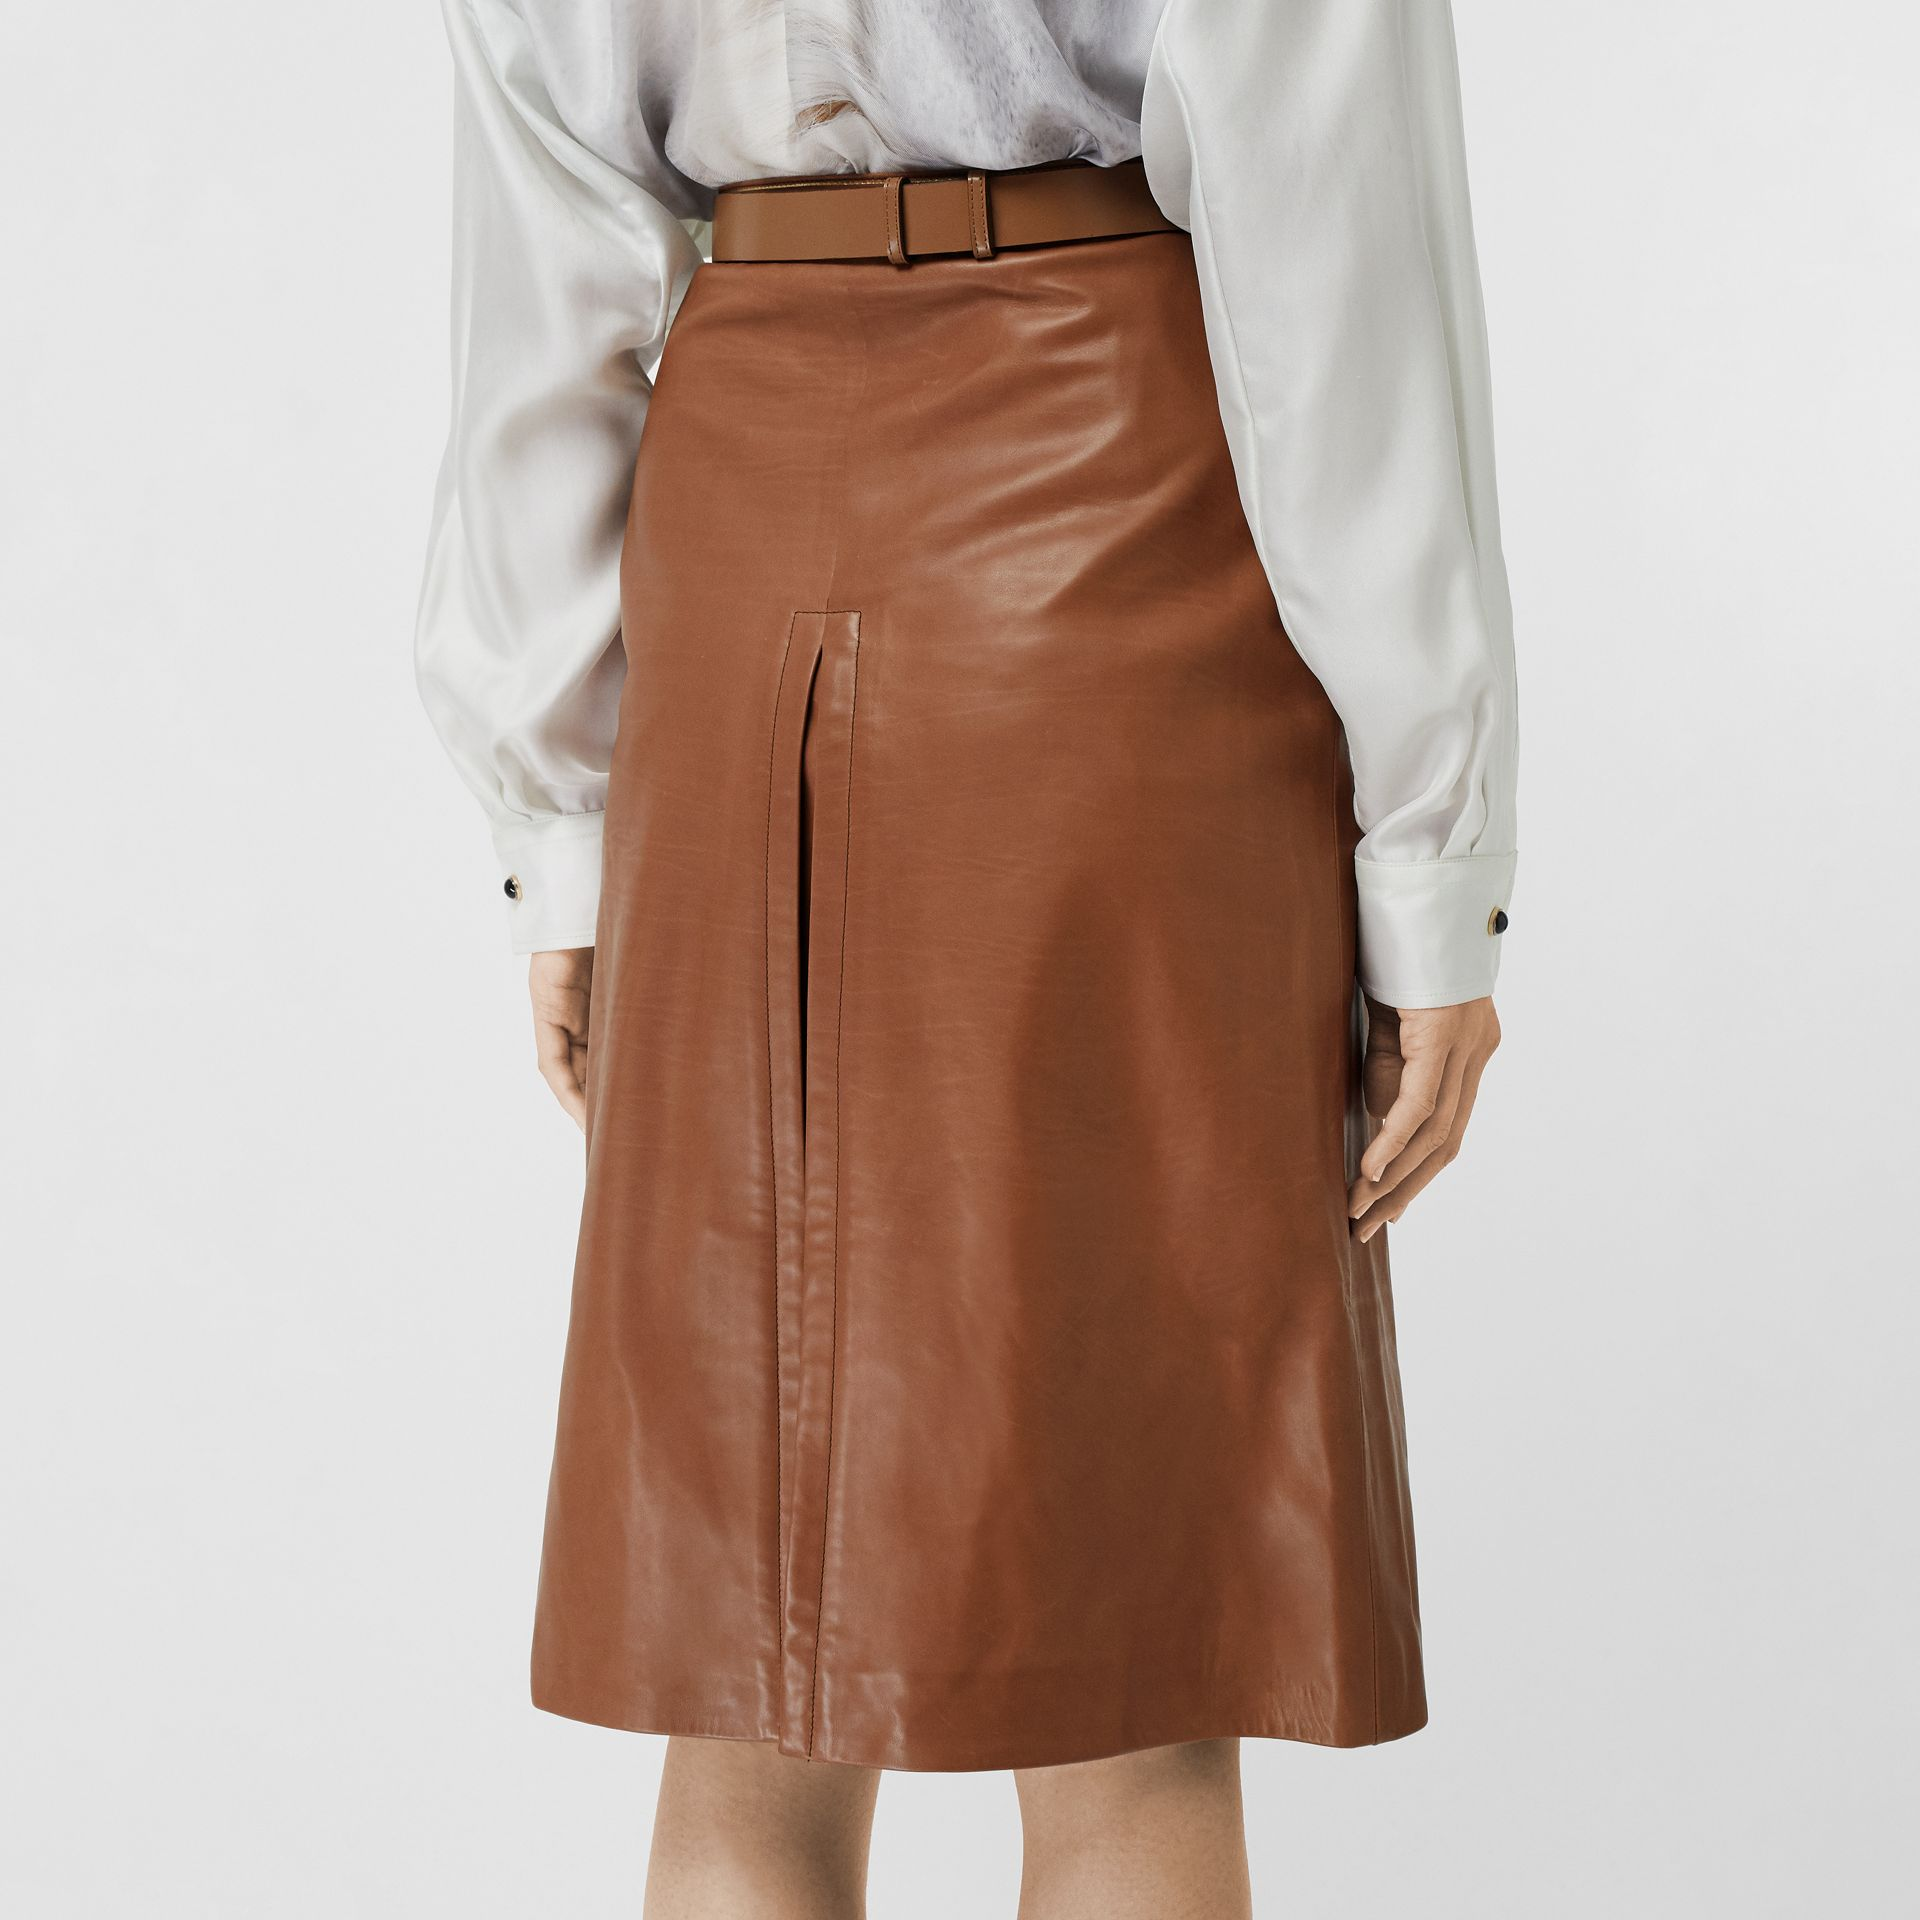 Box Pleat Detail Leather A-line Skirt in Flaxseed - Women | Burberry - gallery image 2